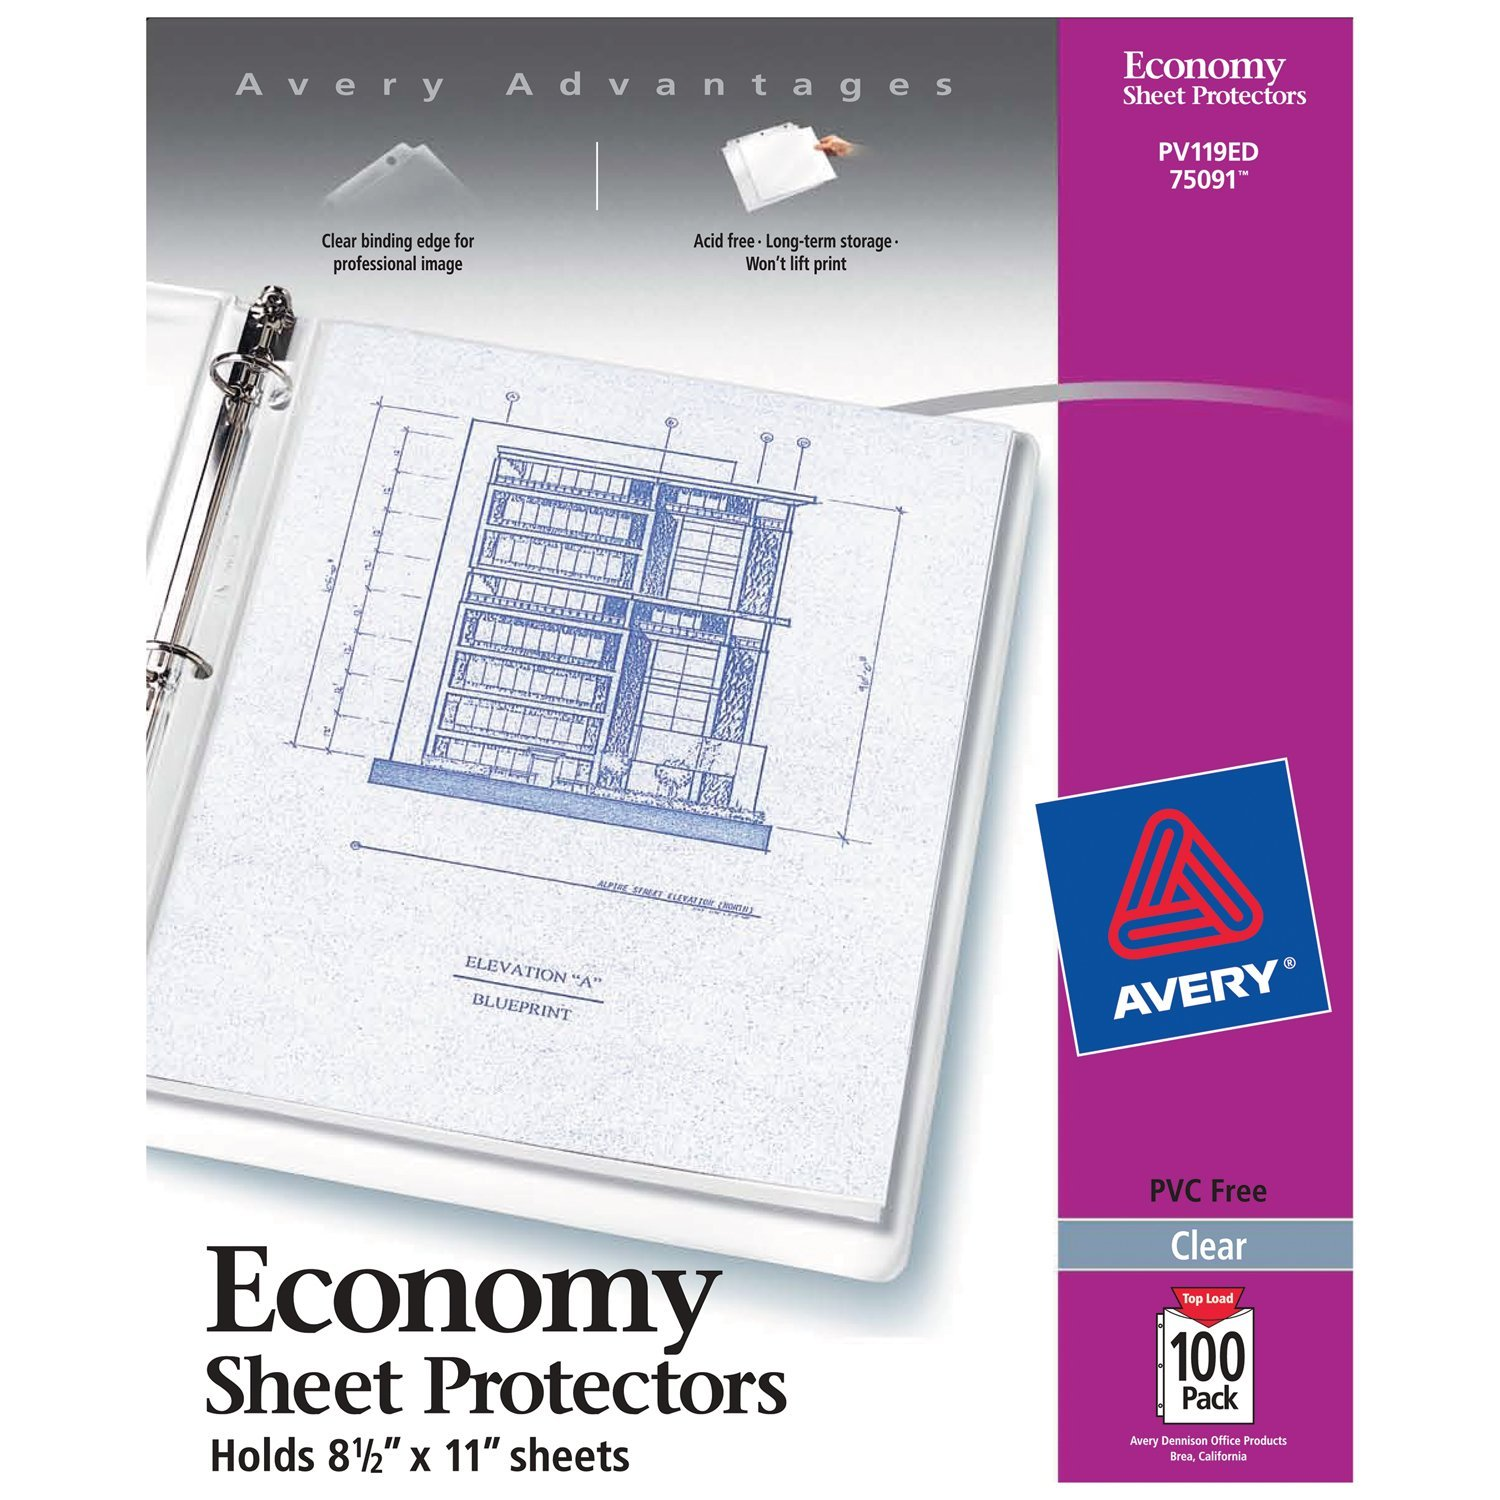 Avery 74130 Super Heavyweight Sheet Protector, Diamond Clear, Acid Free and Archival Safe, 50/Box Avery Products CA